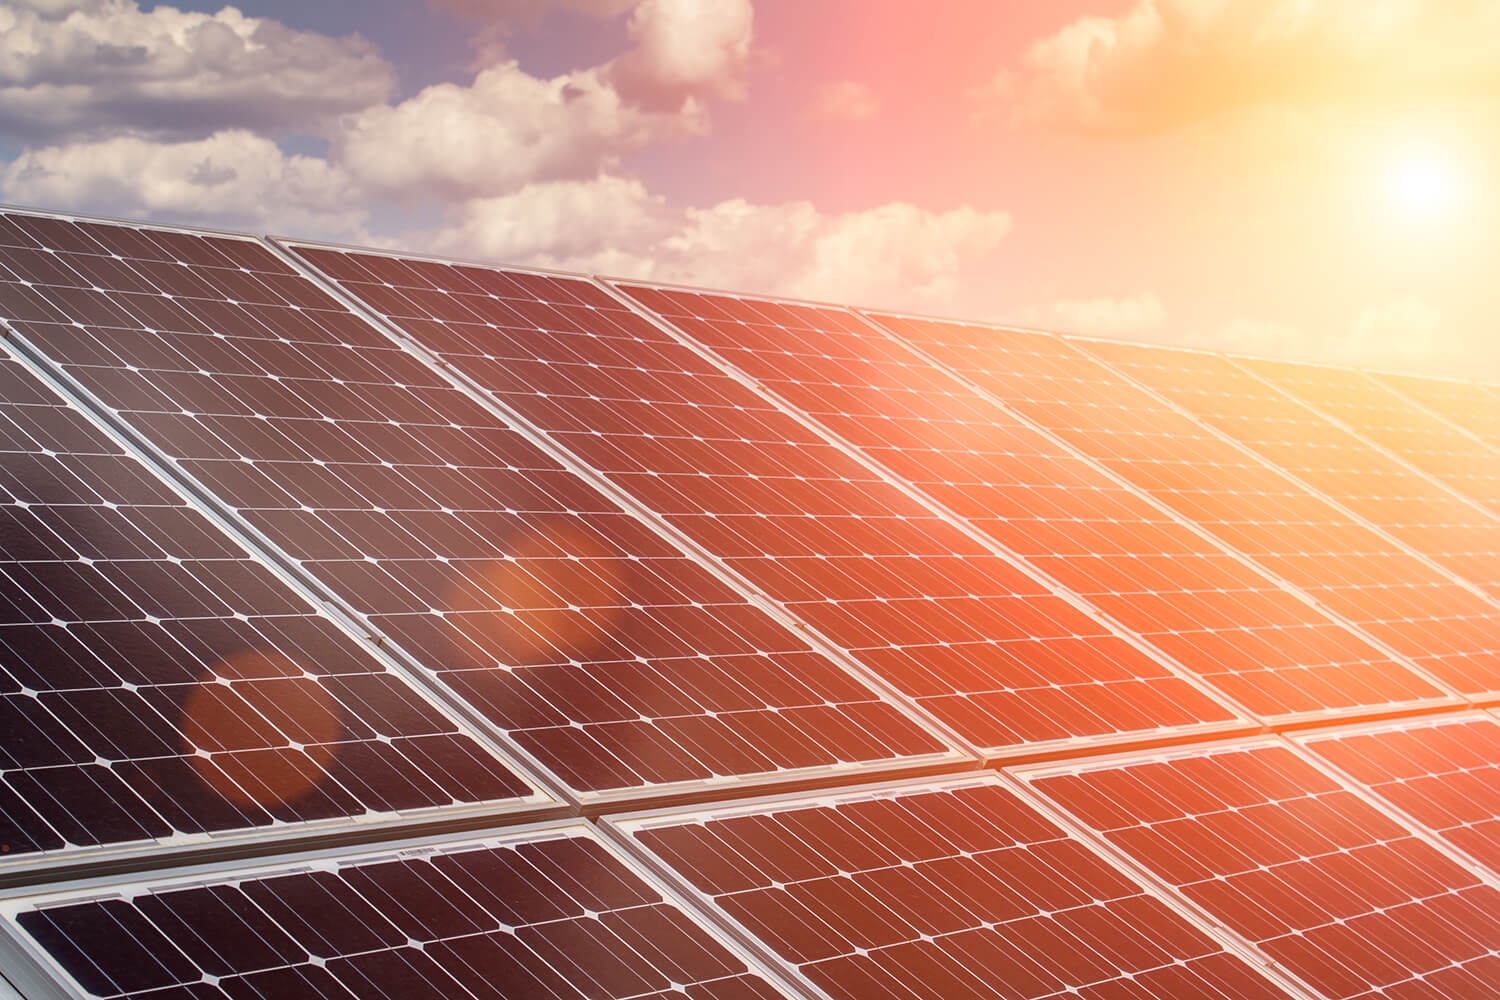 Import tariffs proposed for solar panels in South Africa